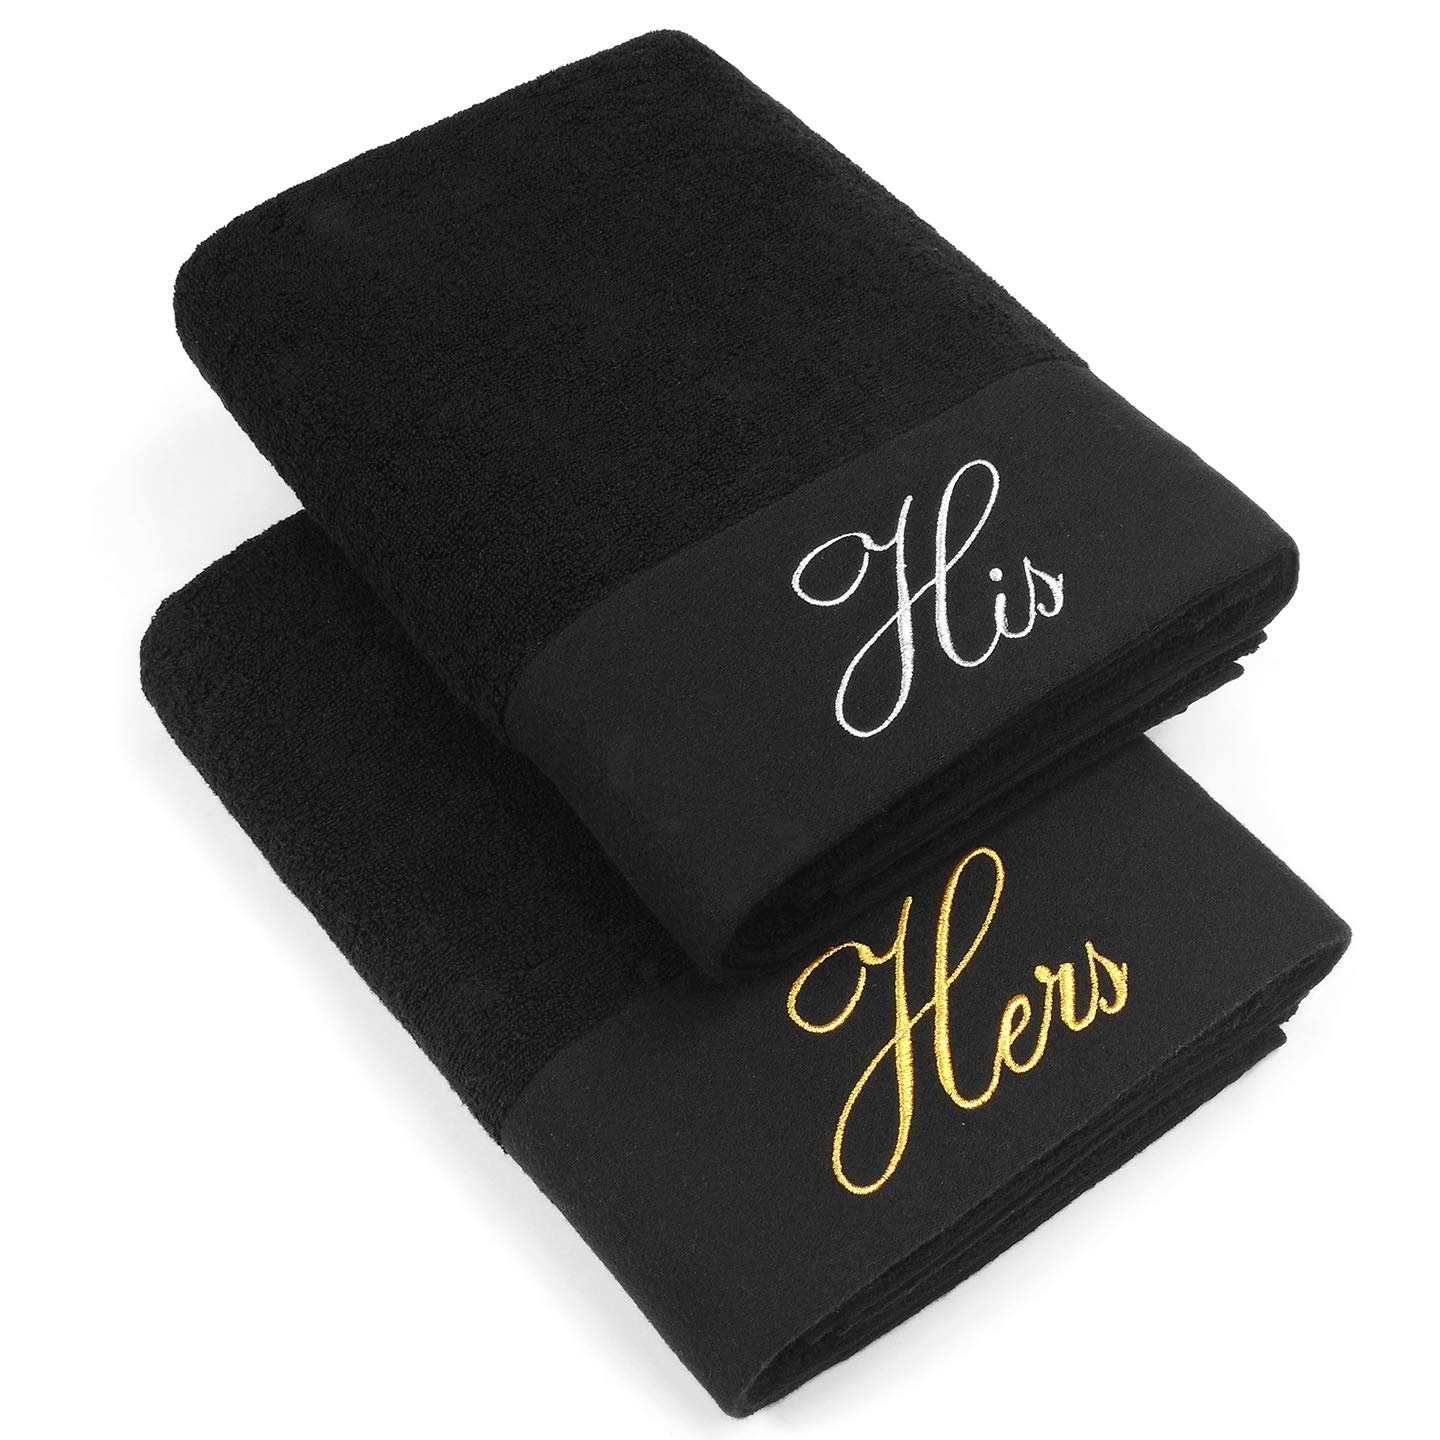 Ben Kaufman Sales KAUFMAN - LUXURIOUS COUPLES EMBROIDERED BATH SHEET SET OF 2 LARGE TOWELS FOR PARTNERS (Black - His and Hers) 104840